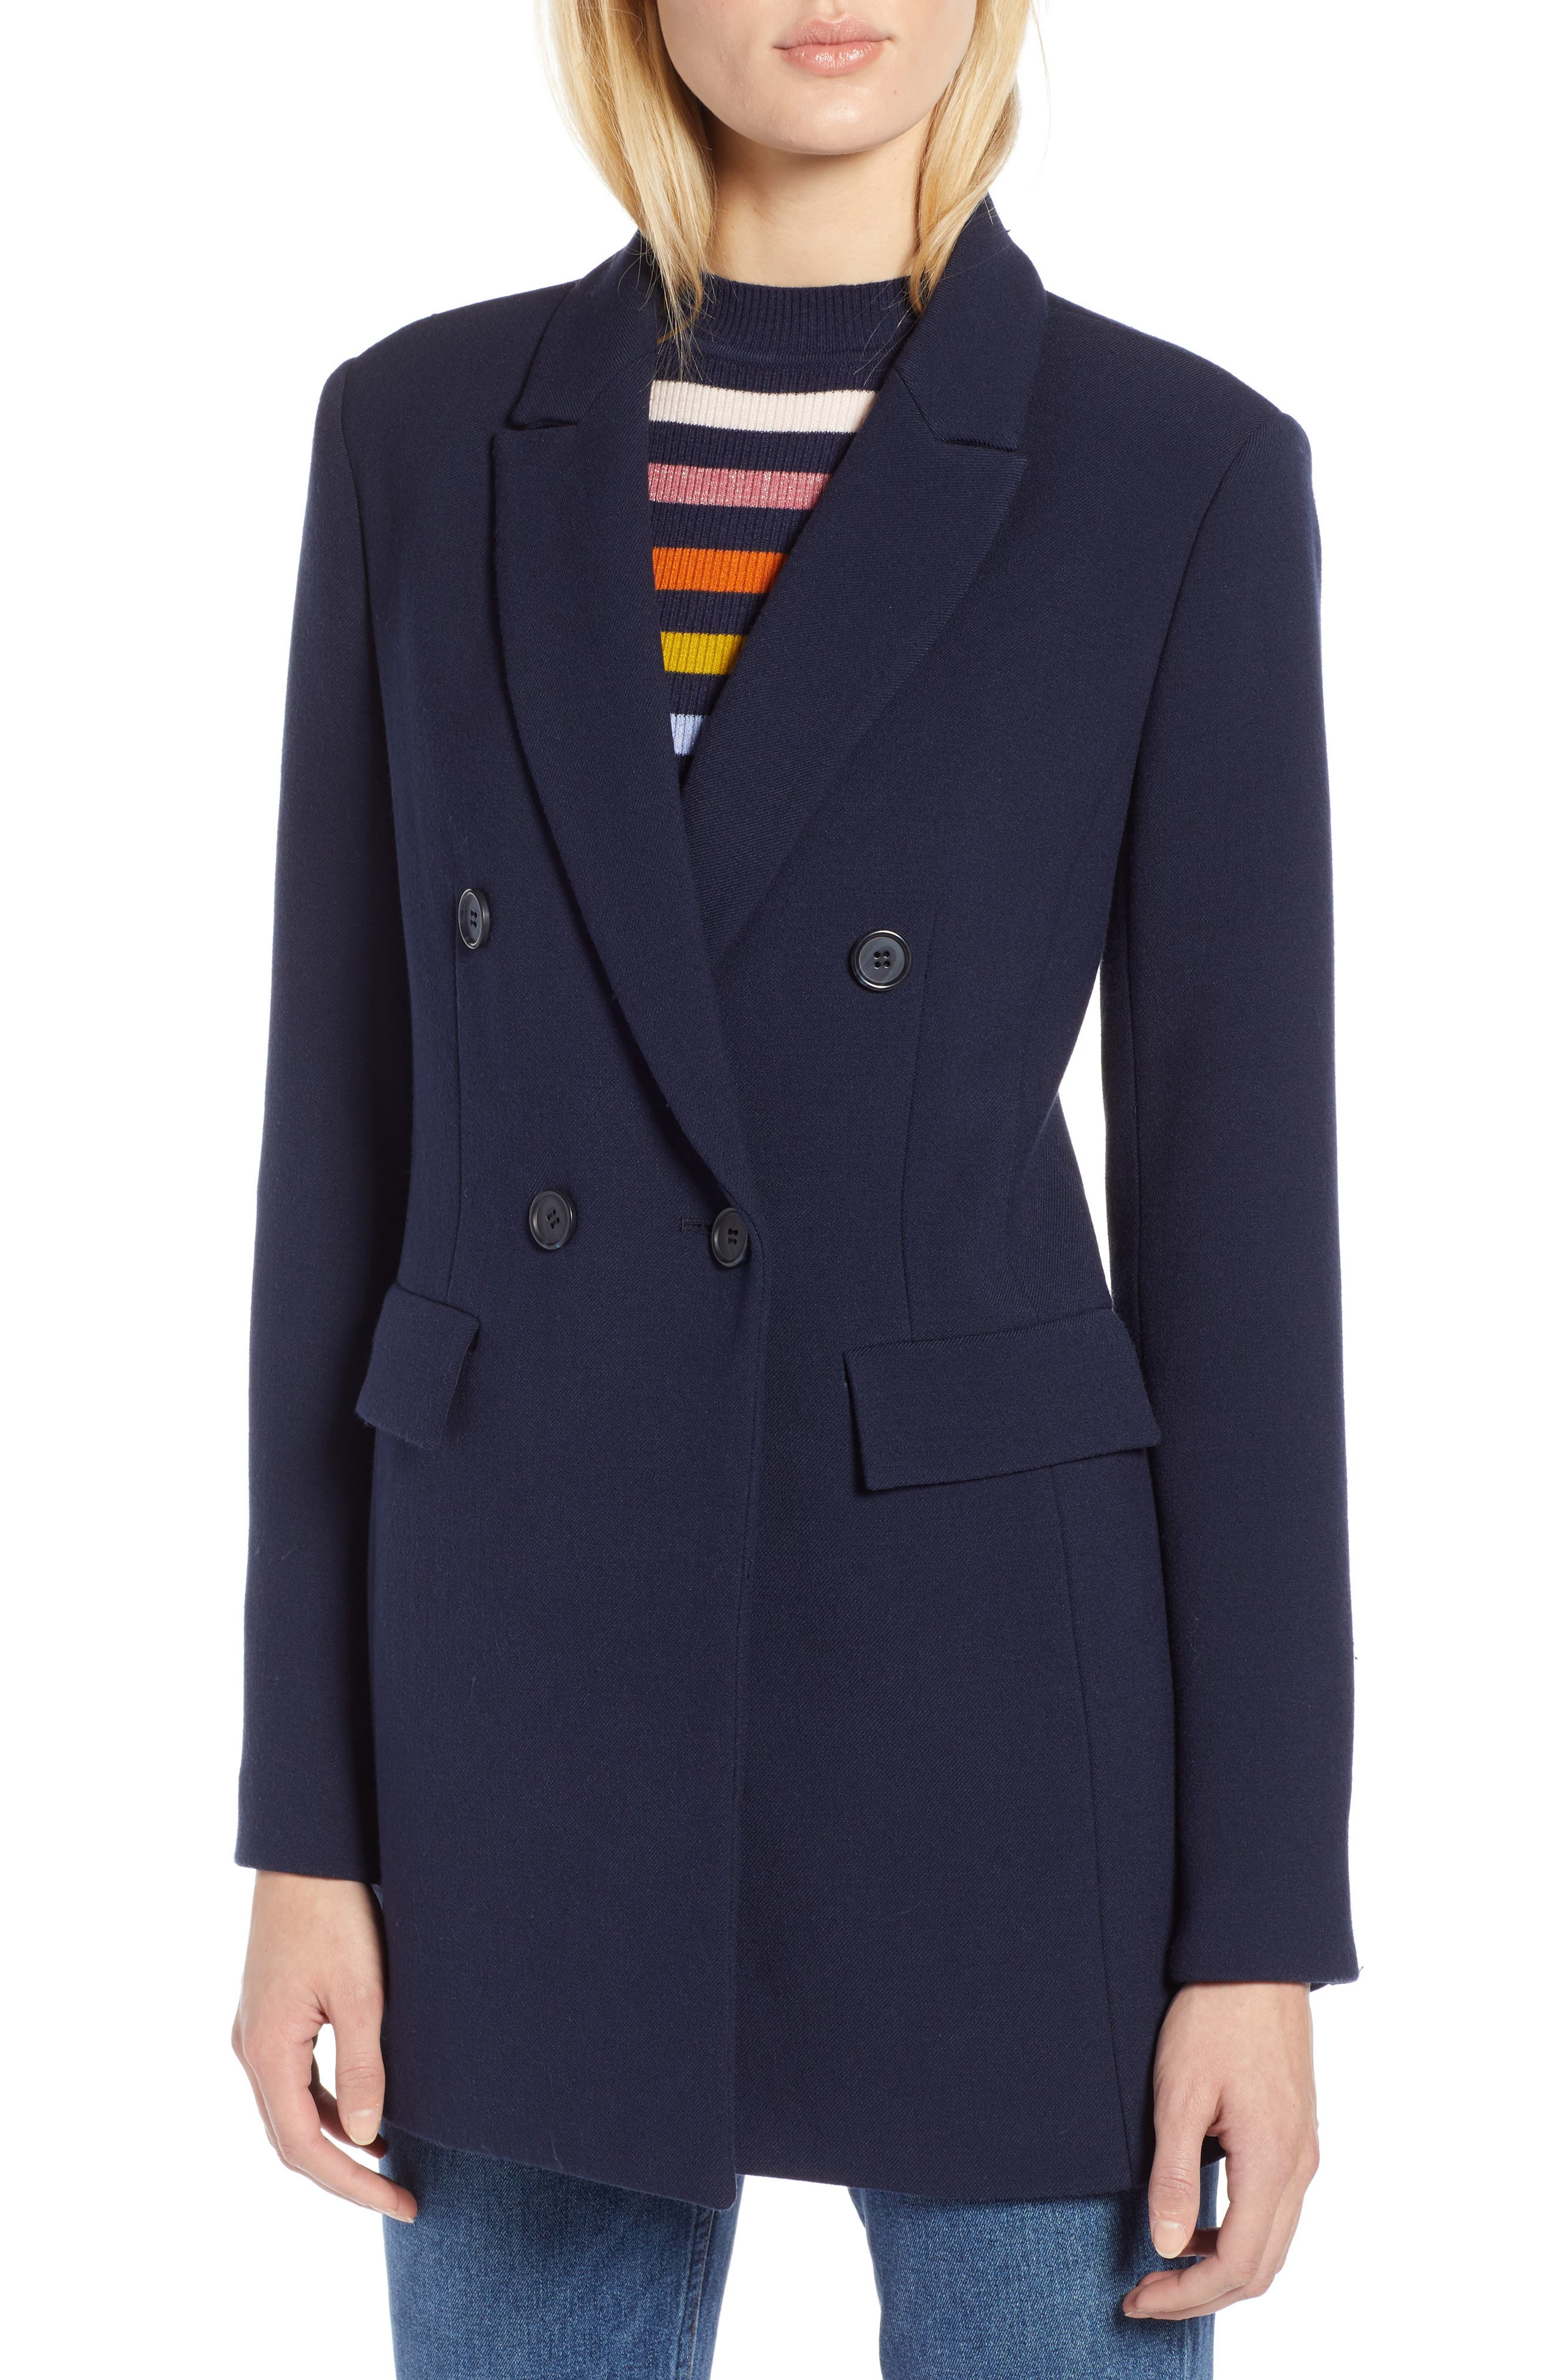 x Atlantic-Pacific Menswear Double Breasted Blazer,                             Alternate thumbnail 6, color,                             NAVY